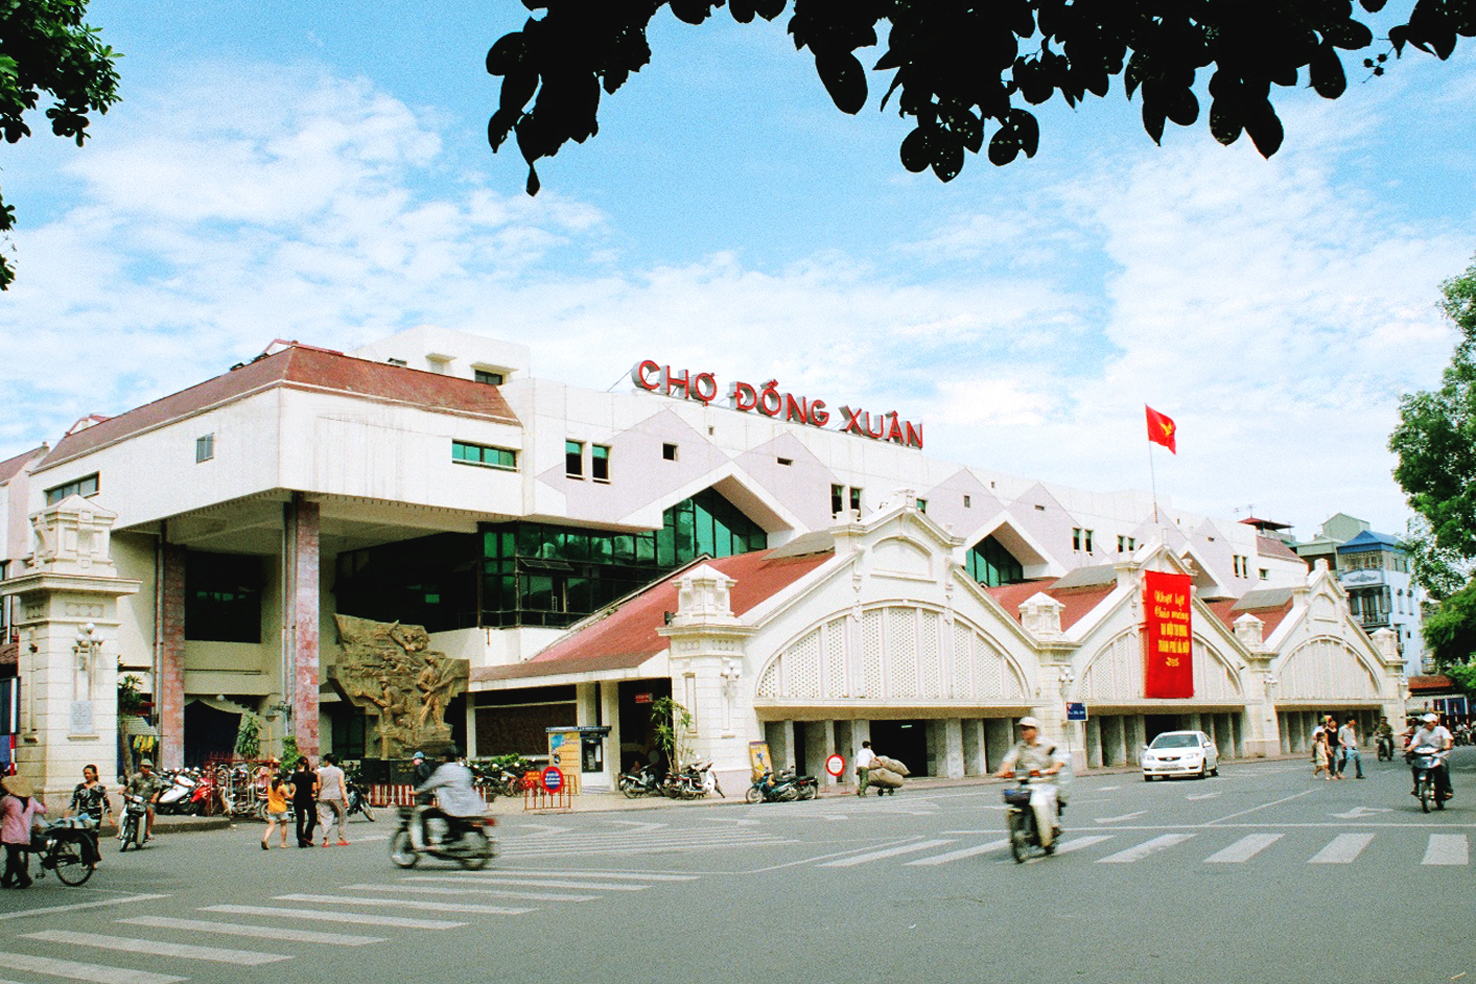 Dong Xuan Market - Hanoi - Capital of Vietnam - being constructed in the end of the 19th century - is a place attracting a lot of visitors to go sightseeing - Photo: Internet